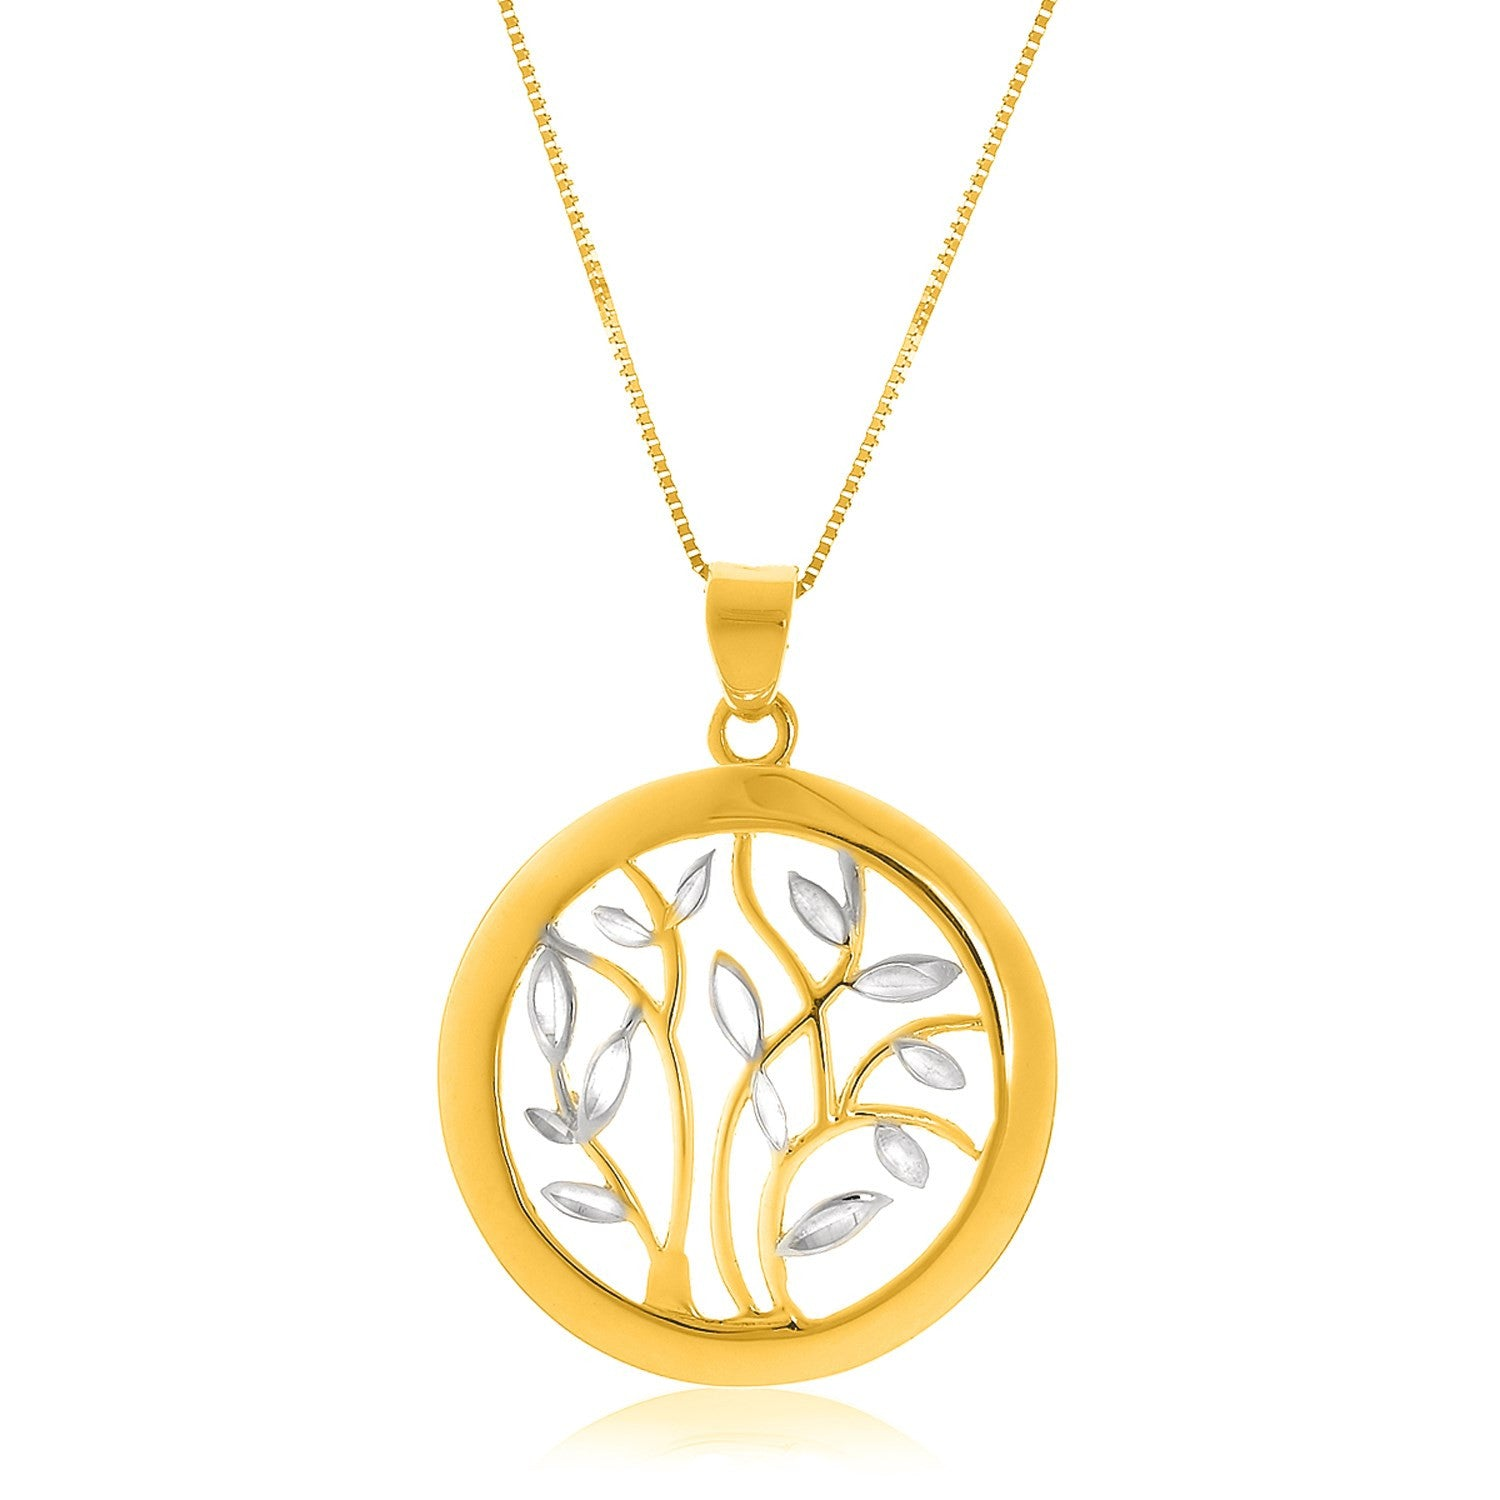 14K Two-Tone Gold Pendant with an Open Round Tree Design #GP76094 ...